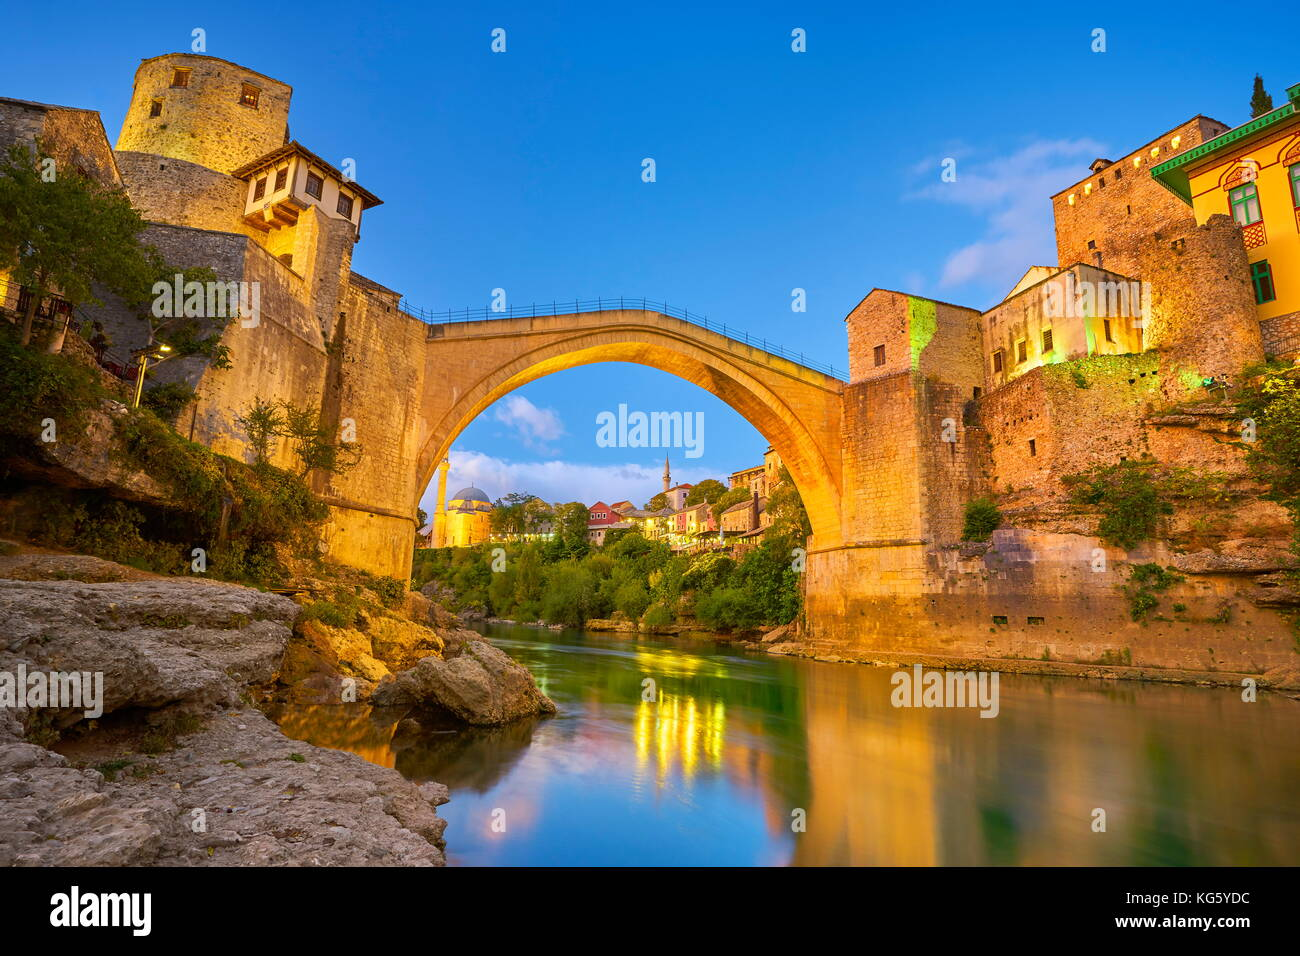 Evening view at Stari Most or Old Bridge, Neretva River, Mostar, Bosnia and Herzegovina - Stock Image